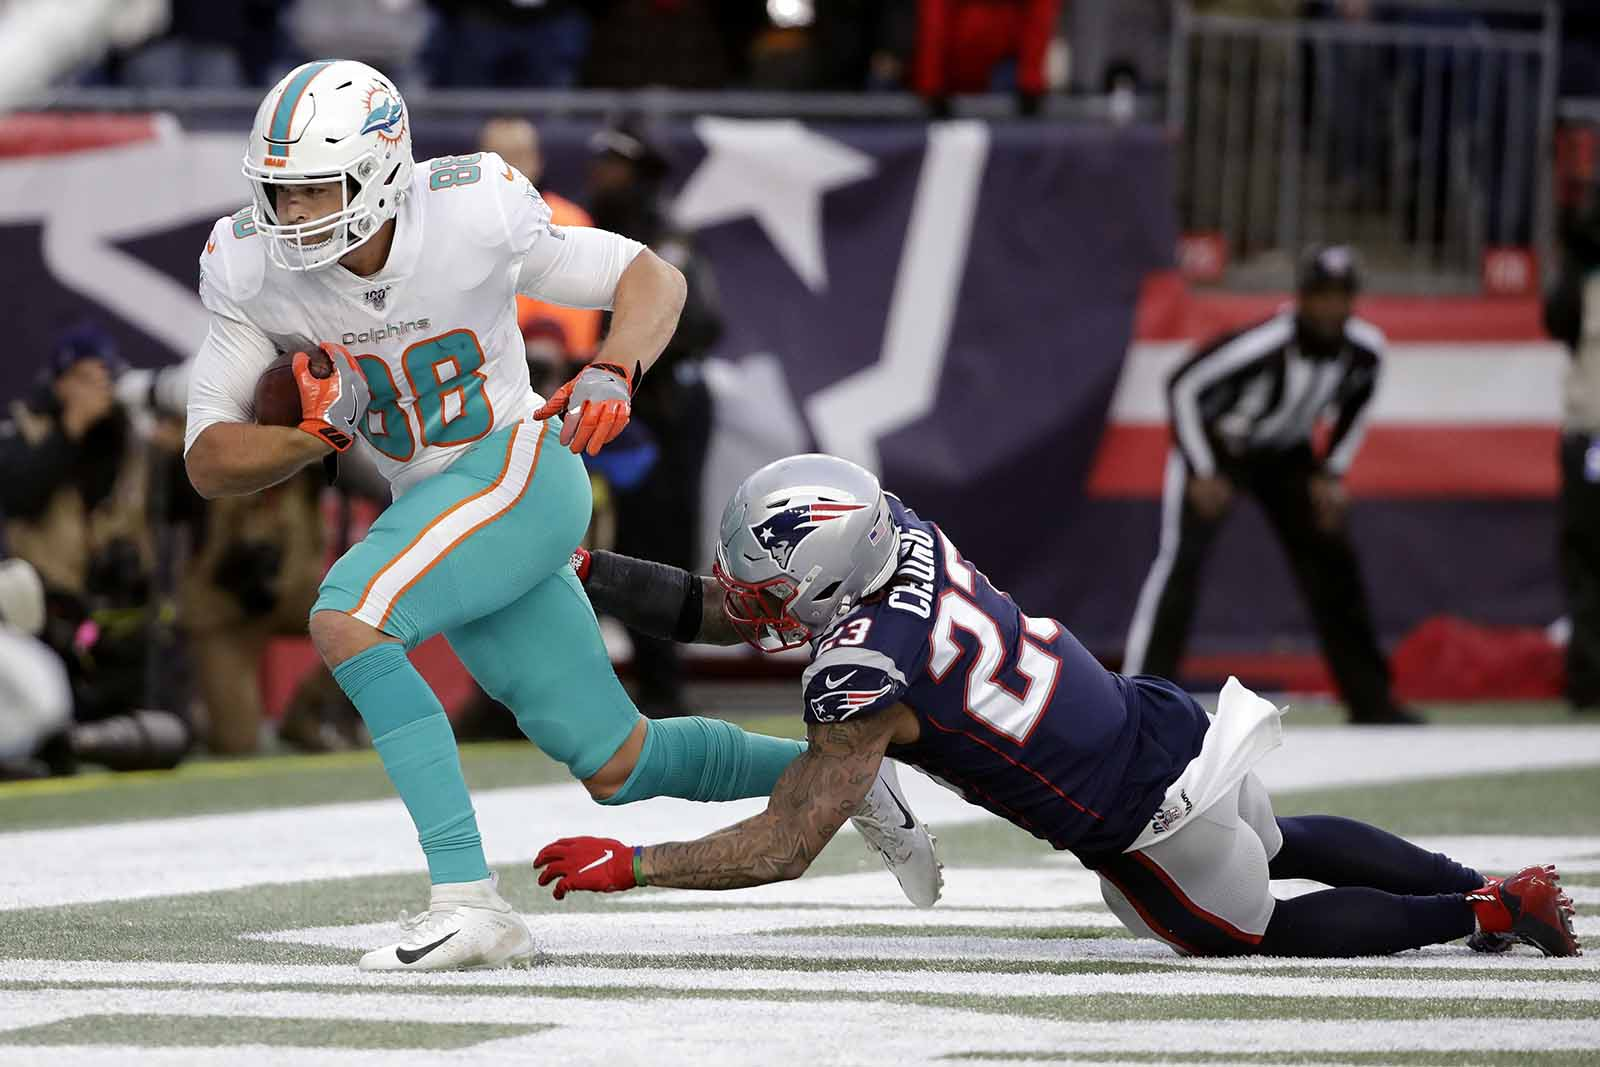 Way to watch Dolphins vs Patriots live stream reddit NFL game today free from anywhere, check the latest nfl score and updates.